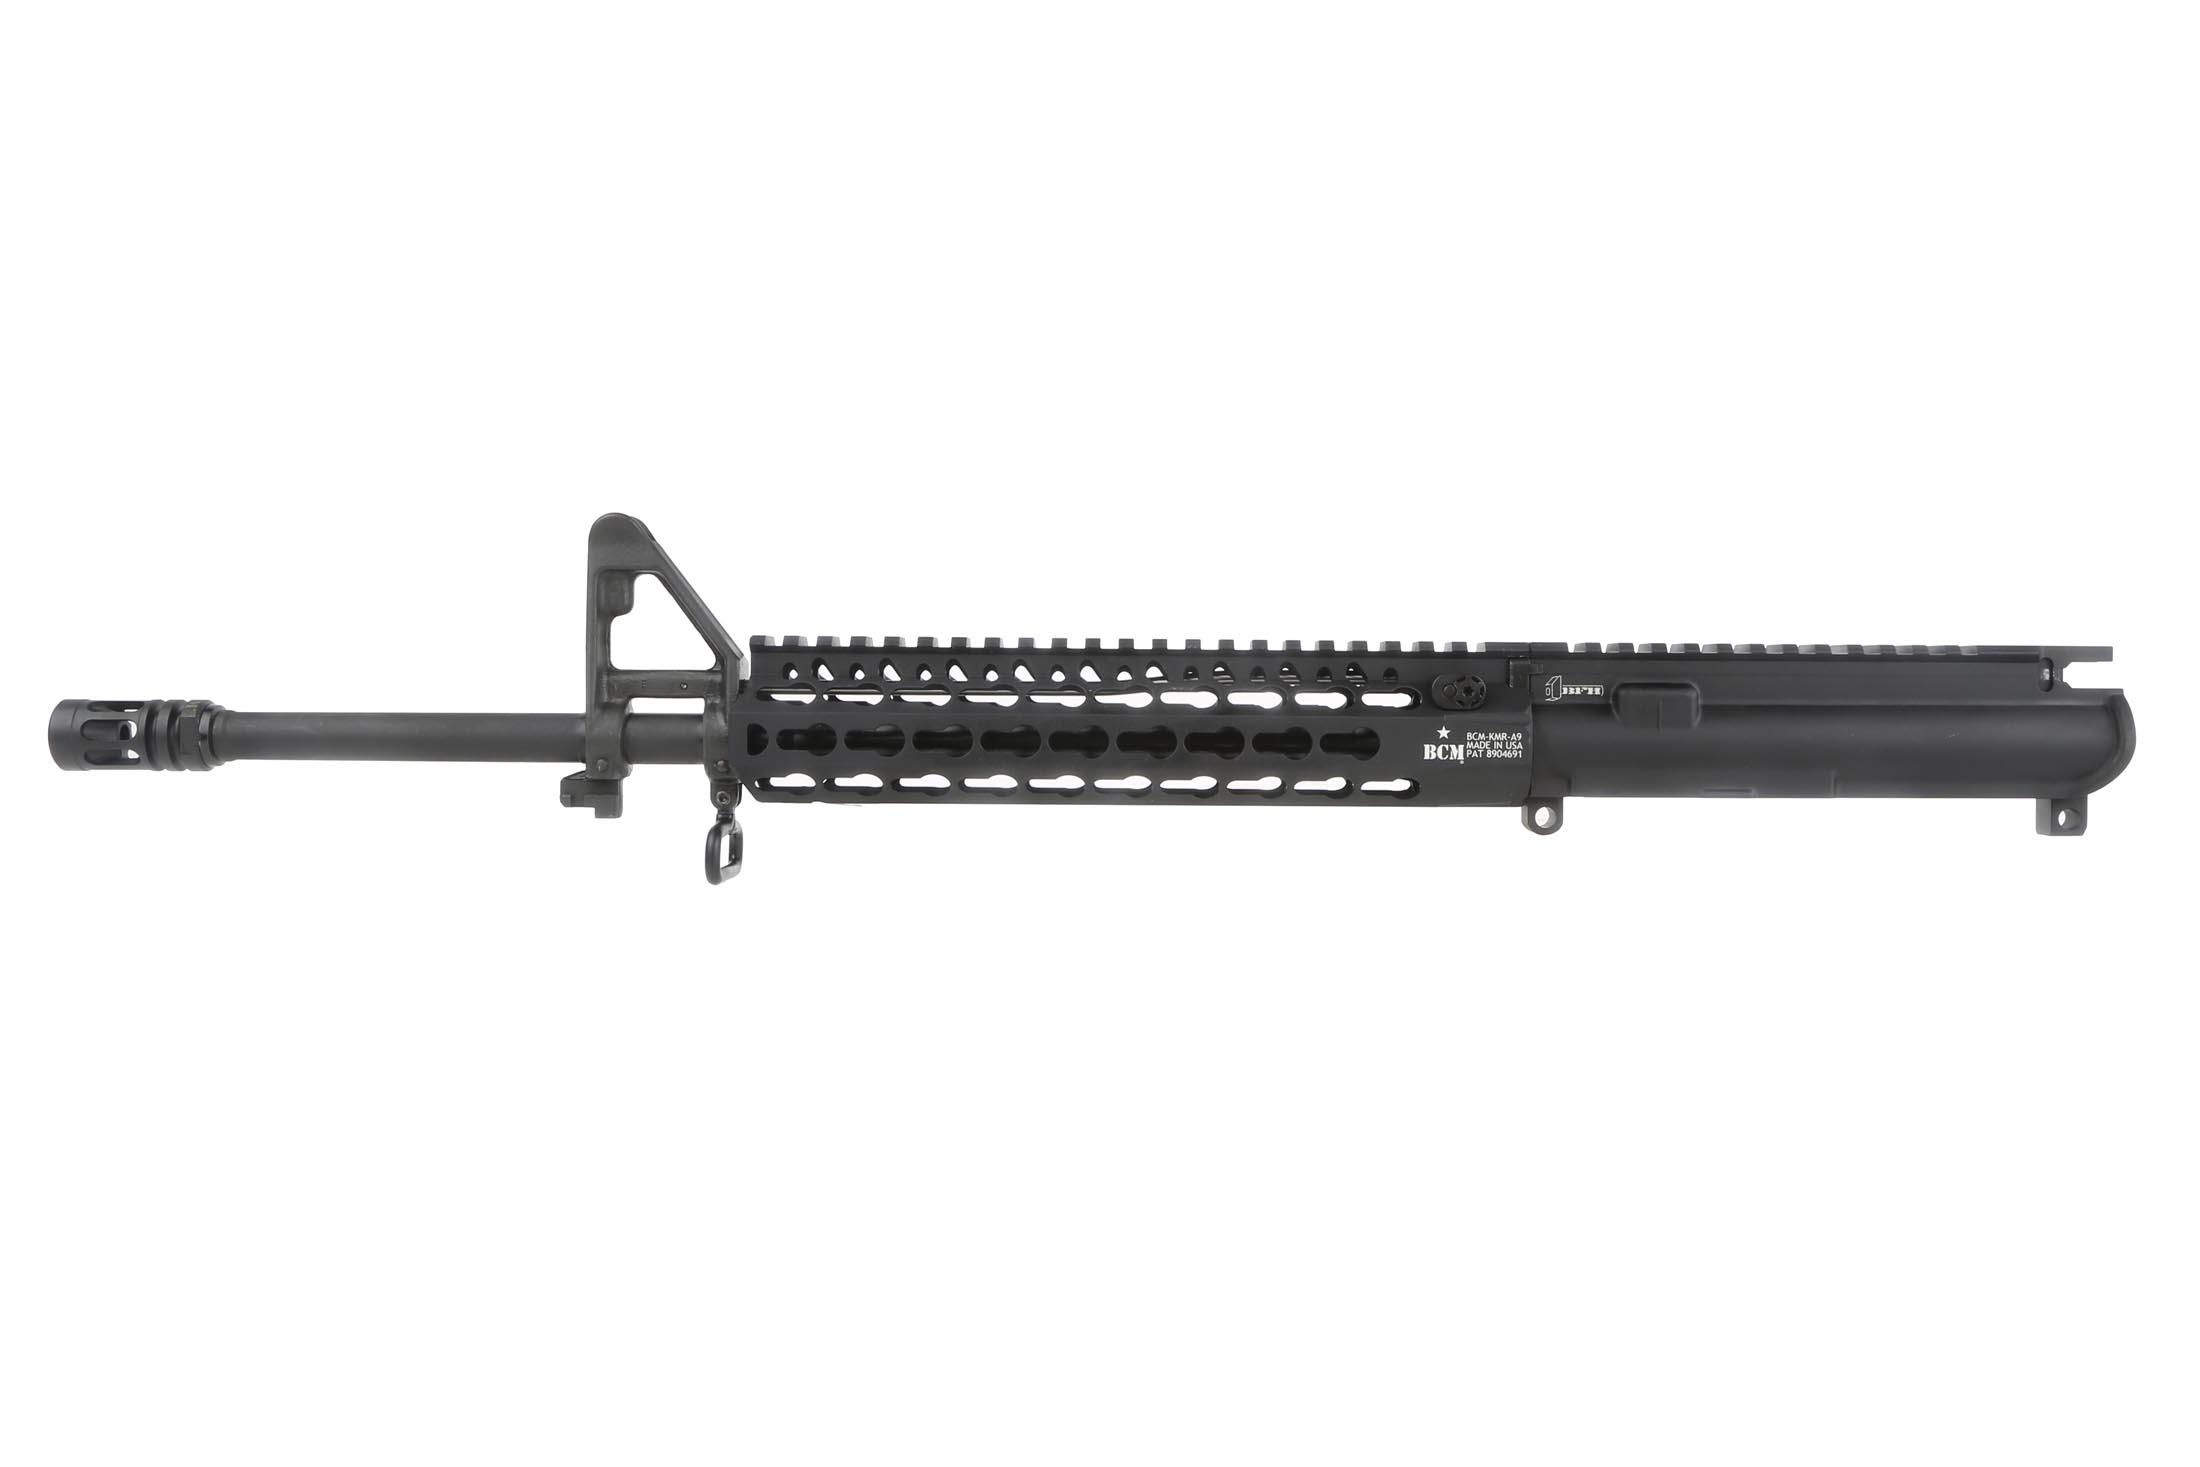 "Bravo Company Manufacturing 16 5.56 NATO 1:7 Light Weight Barreled Upper - 9"" KeyMod KMR Alpha Rail"